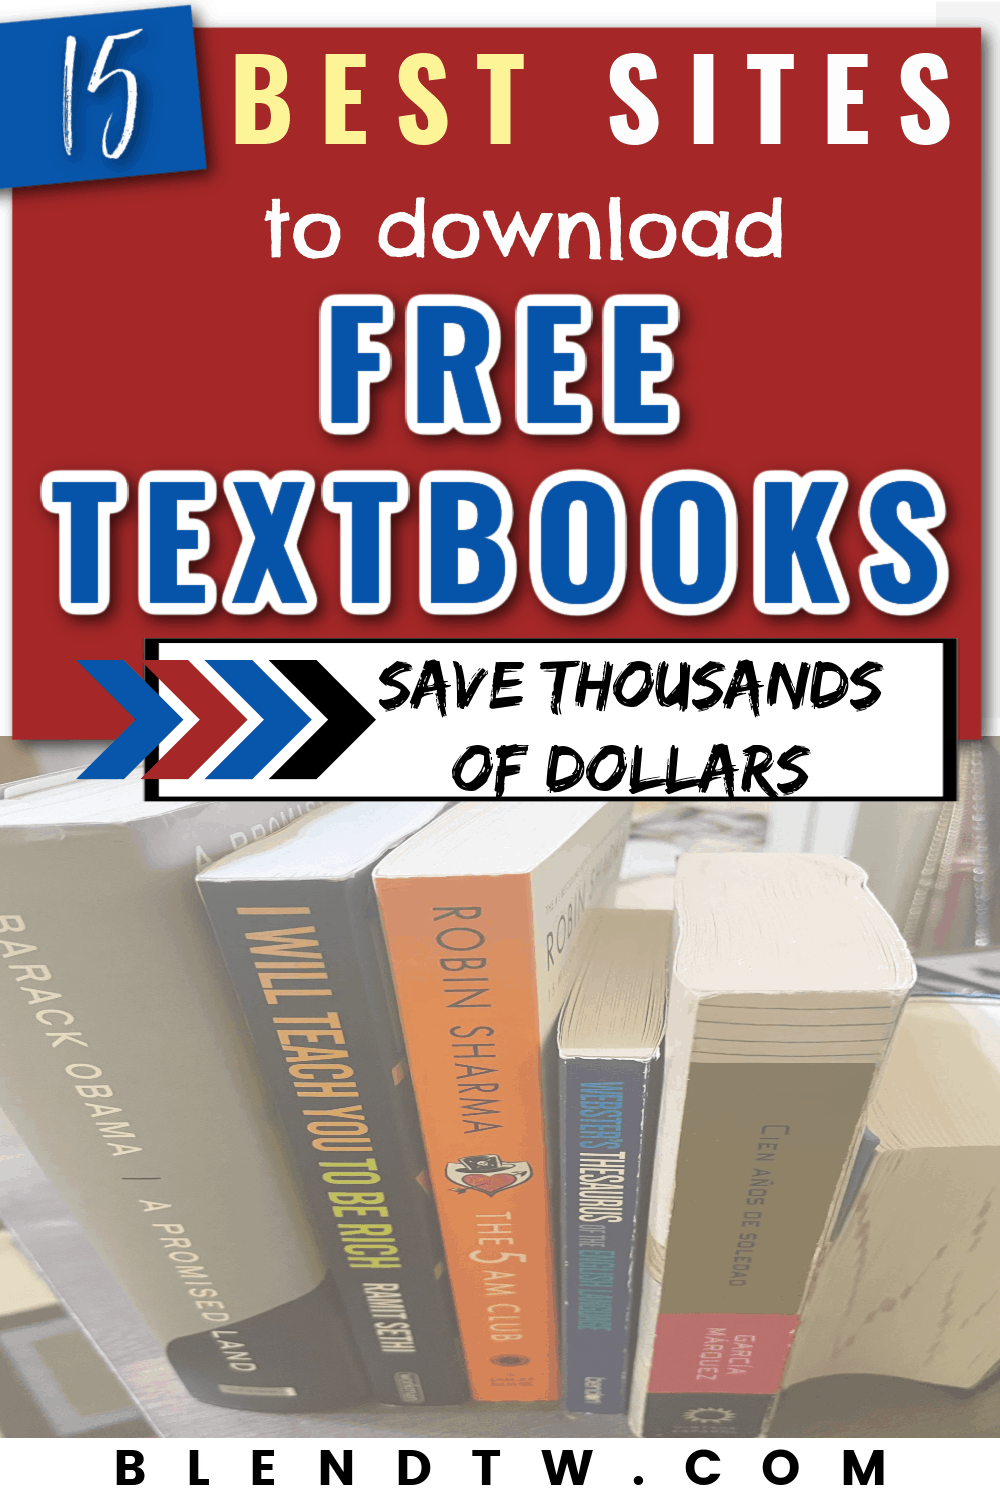 15 best sites to download free textbooks